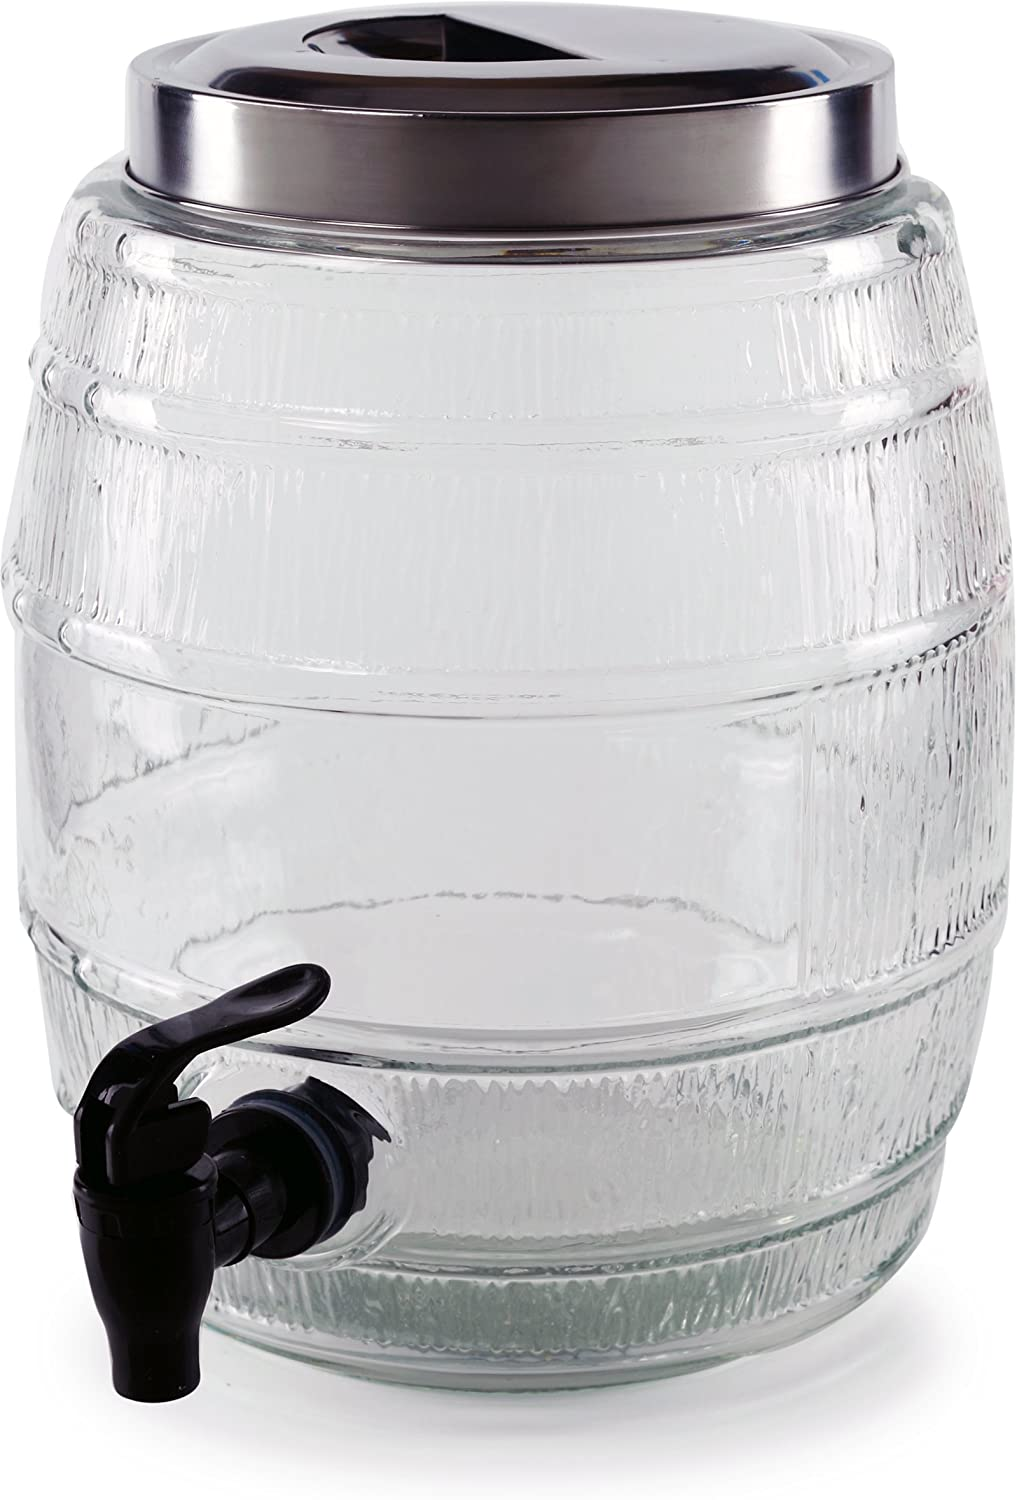 Circleware Barrel Shaped Sun Tea Jar Beverage Dispenser, Fun Party Entertainment Home Kitchen Glassware Water Pitcher for Juice, Beer, Kombucha & Cold Drinks, Lead-Free, 1.3 Gallon, Keg